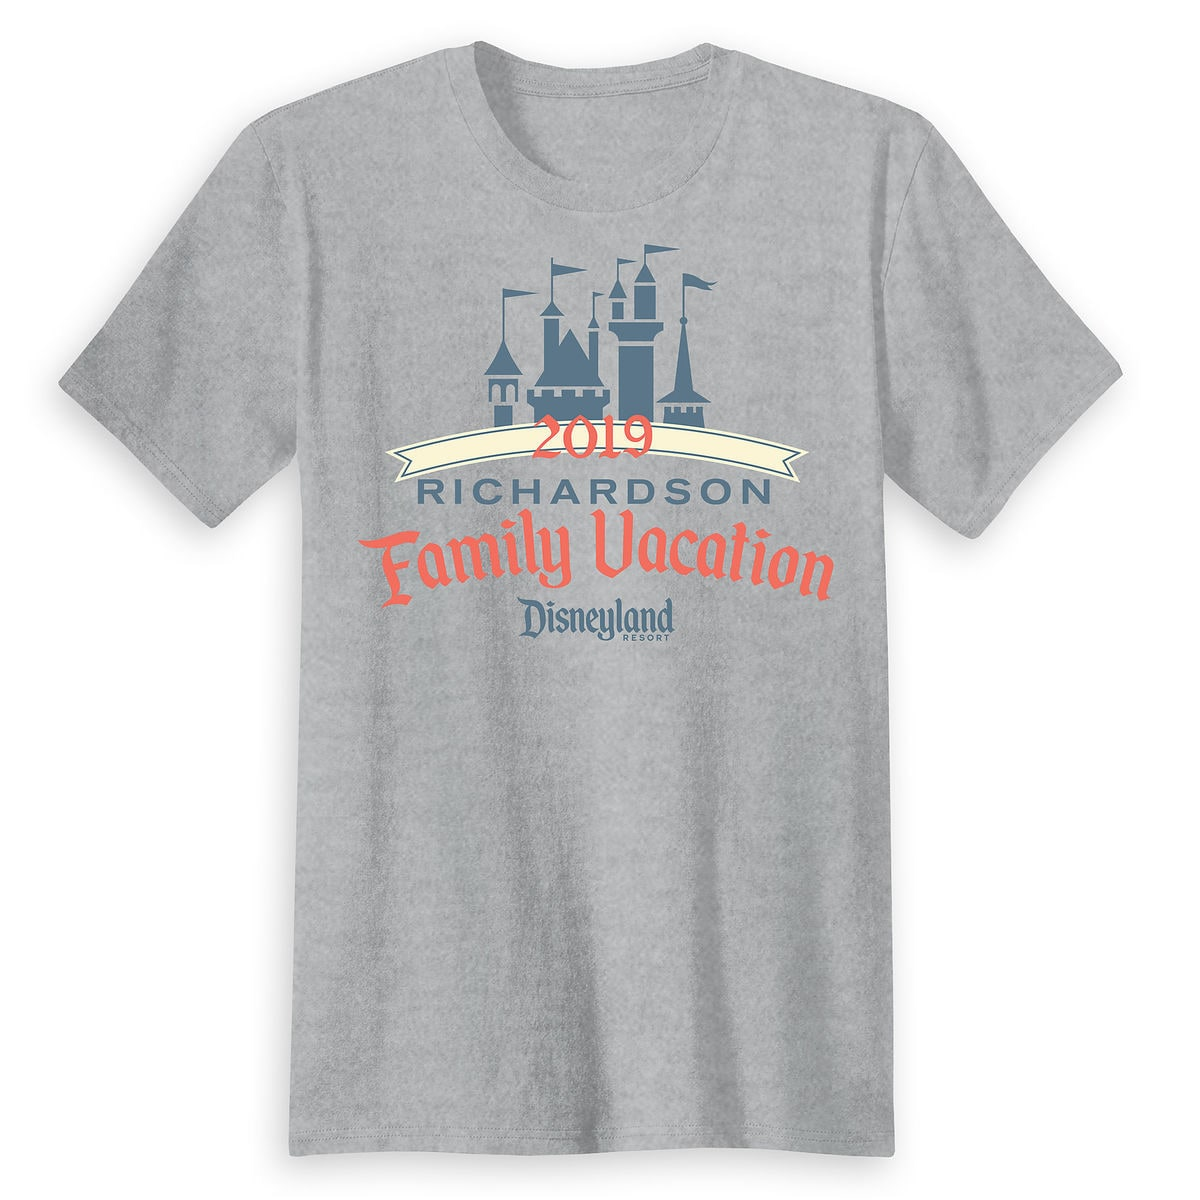 847eef86d90 Adults  Sleeping Beauty Family Vacation T-Shirt - Disneyland Resort - 2019  - Customized